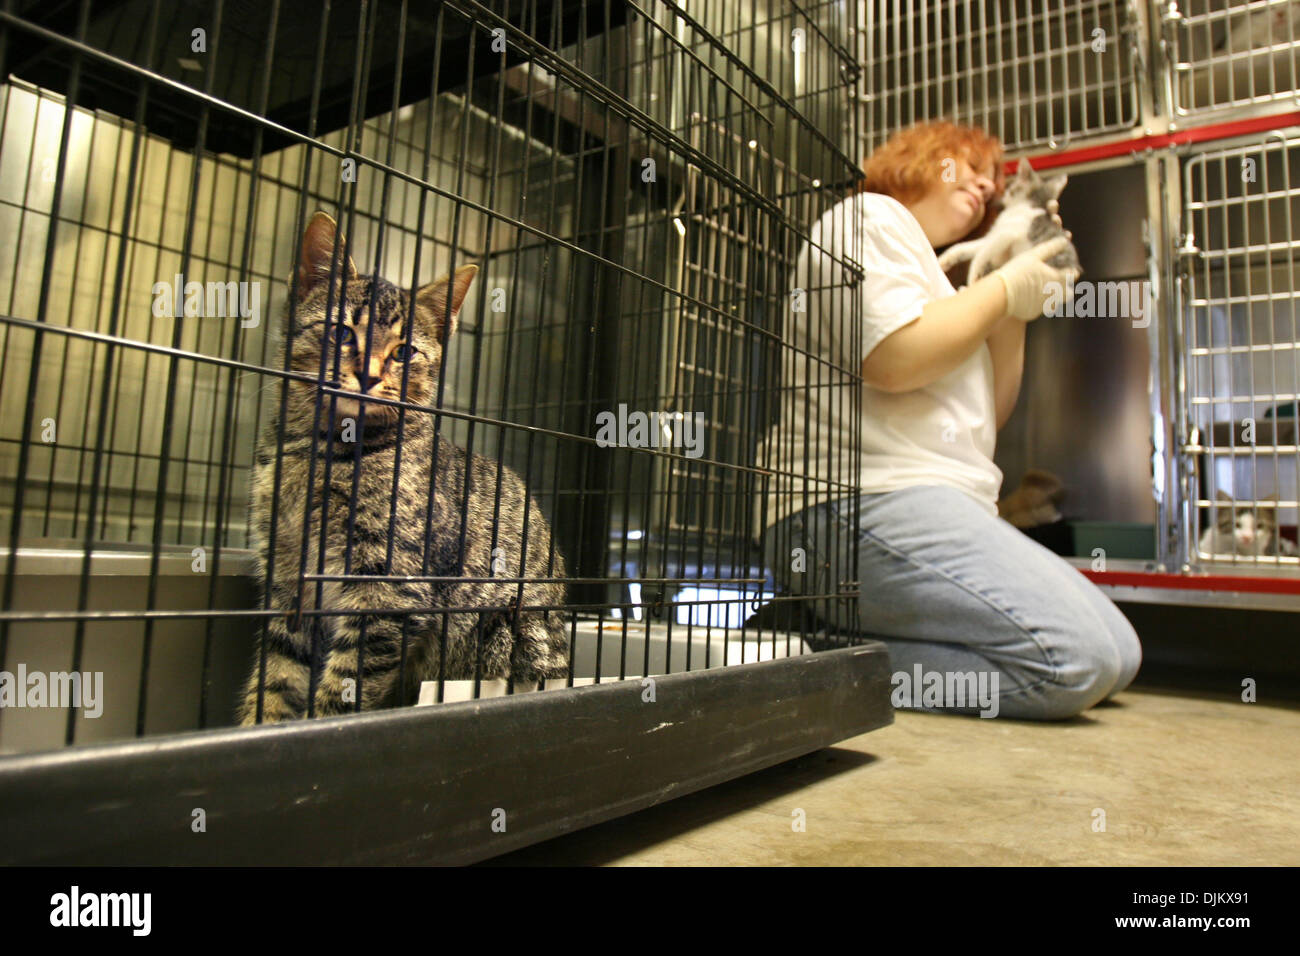 Sept. 14, 2010 - Colliervile, TN, U.S. - September 14, 2010 - A brown tabby cat named Kiwi peers from it's cage at the Collierville Animal Shelter where volunteer Tina Dean worked sprucing up inside the feline area at the shelter Tuesday. The shelter is preparing for Friday's Meow Madness where they are planning to do adoptions from 12 pm til Midnight. The annual event is held each - Stock Image